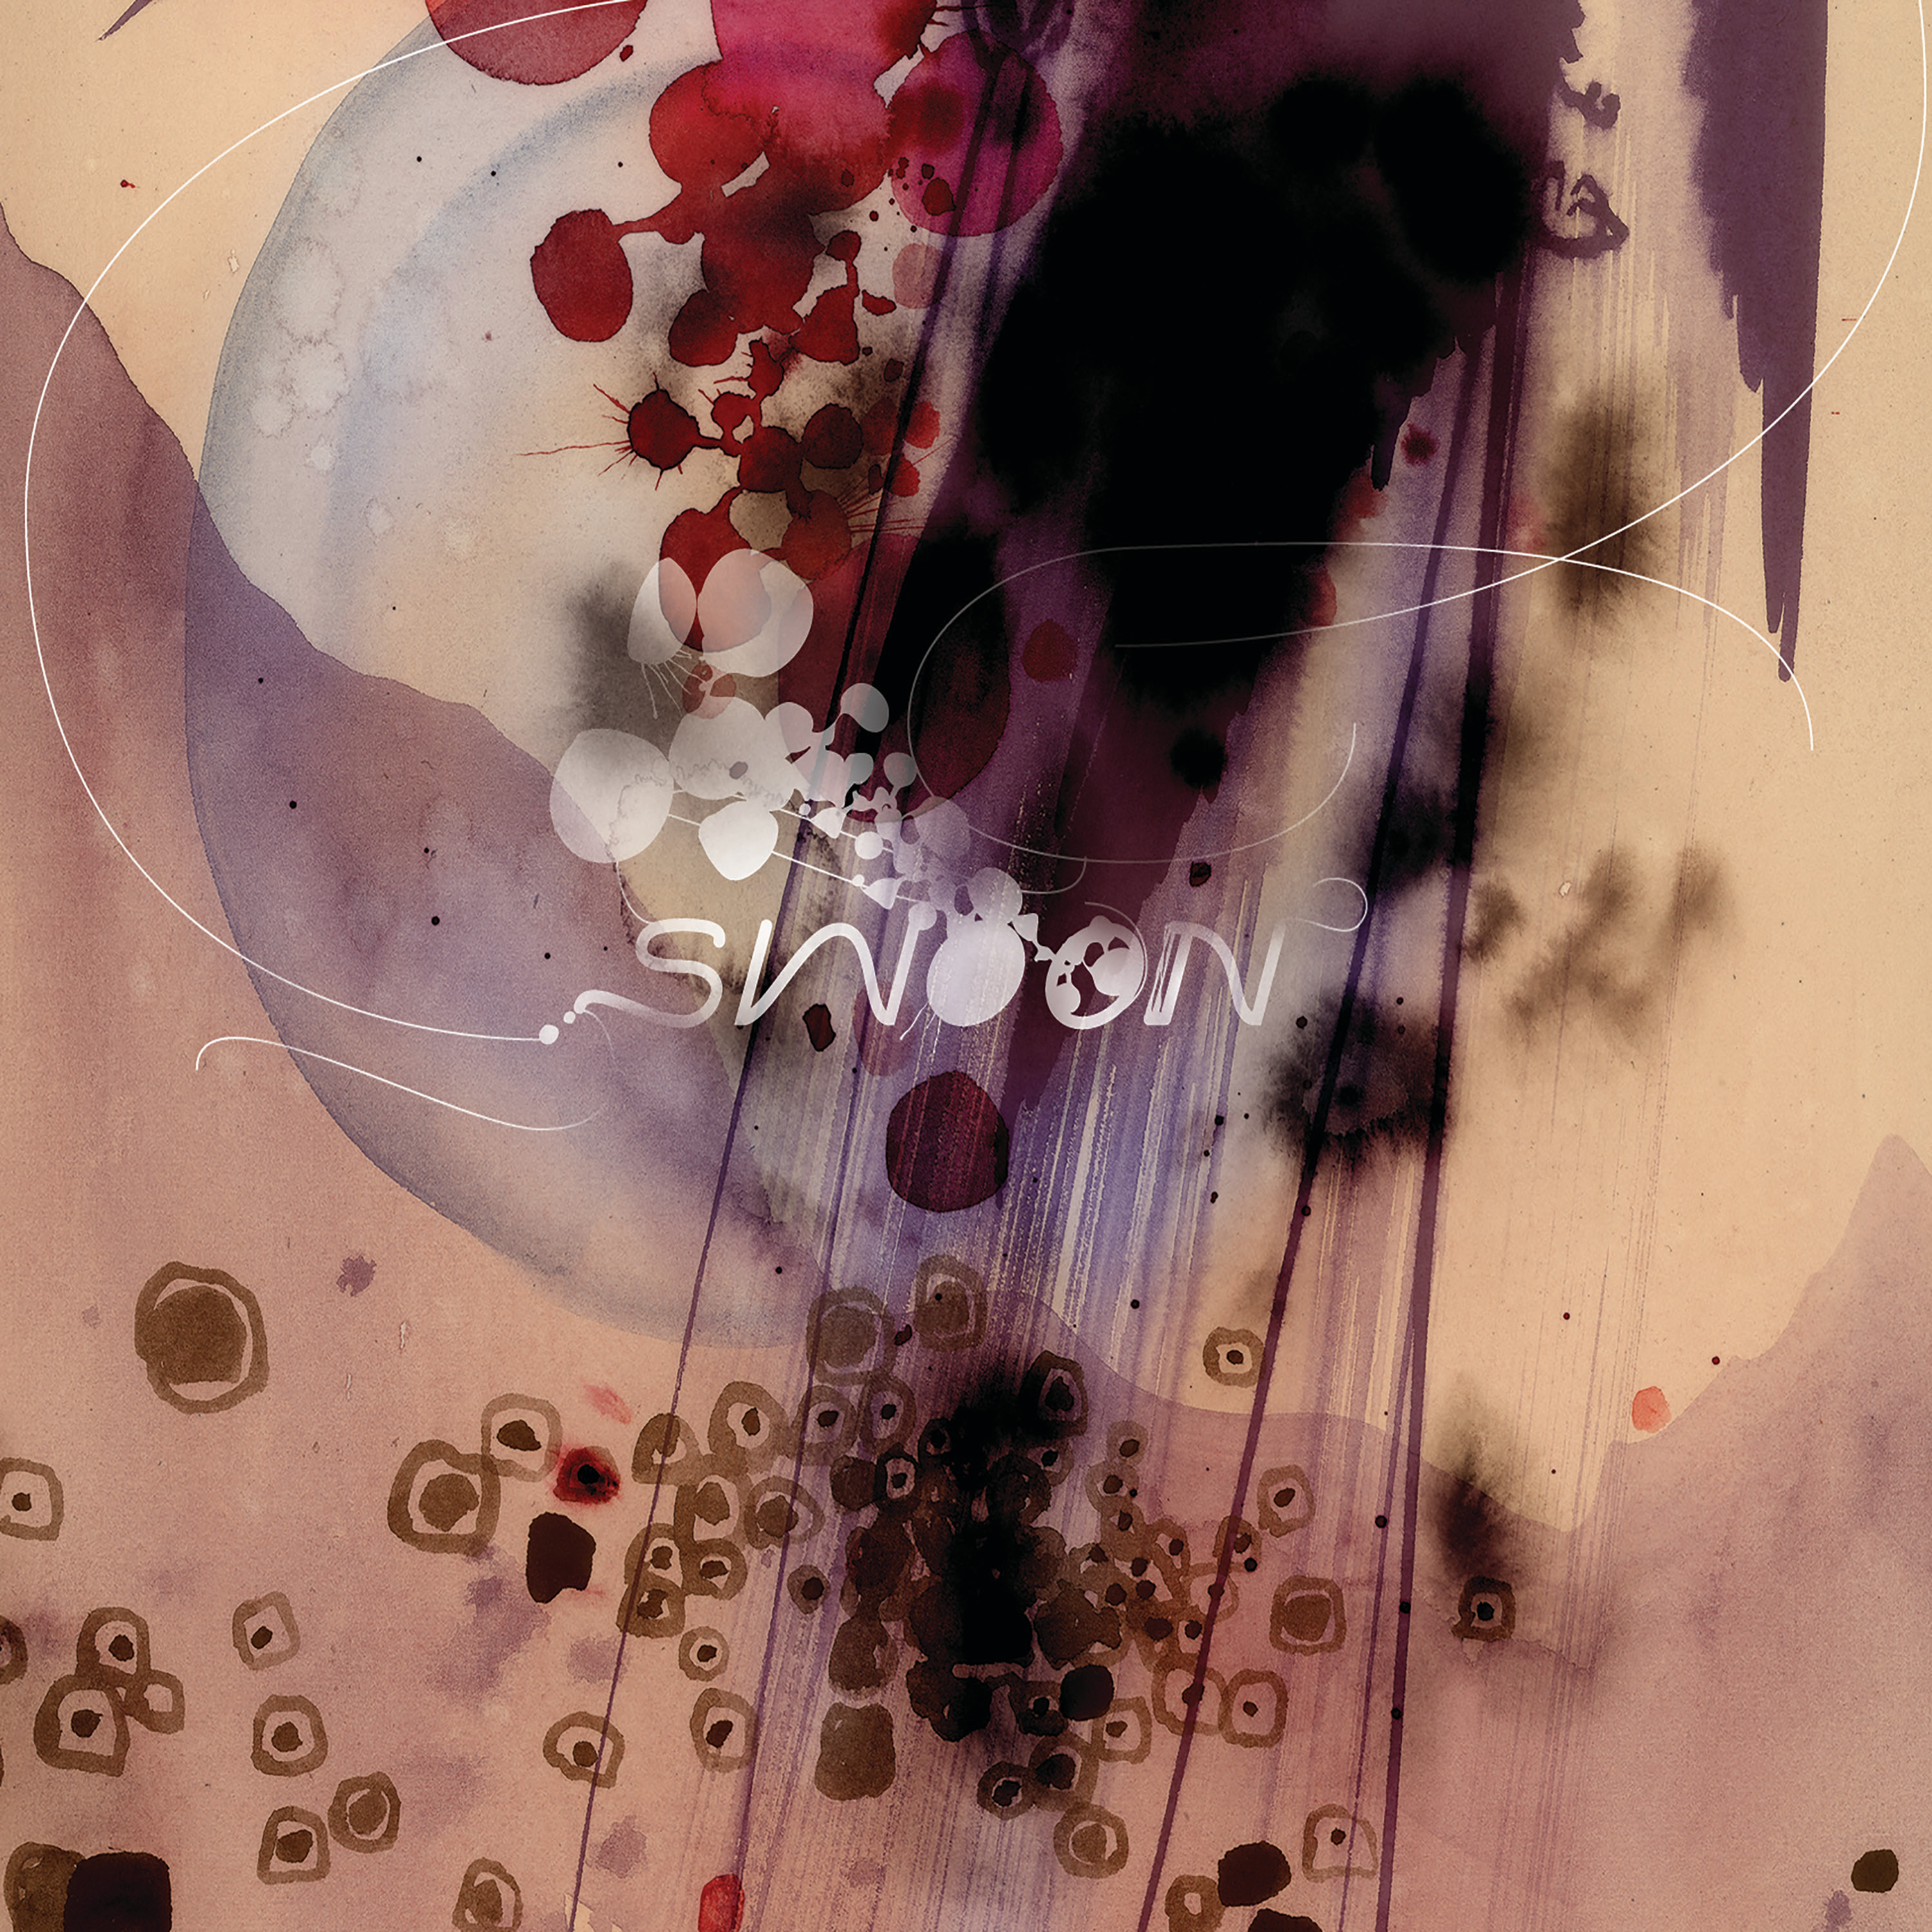 Silversun Pickups - Swoon - Digital